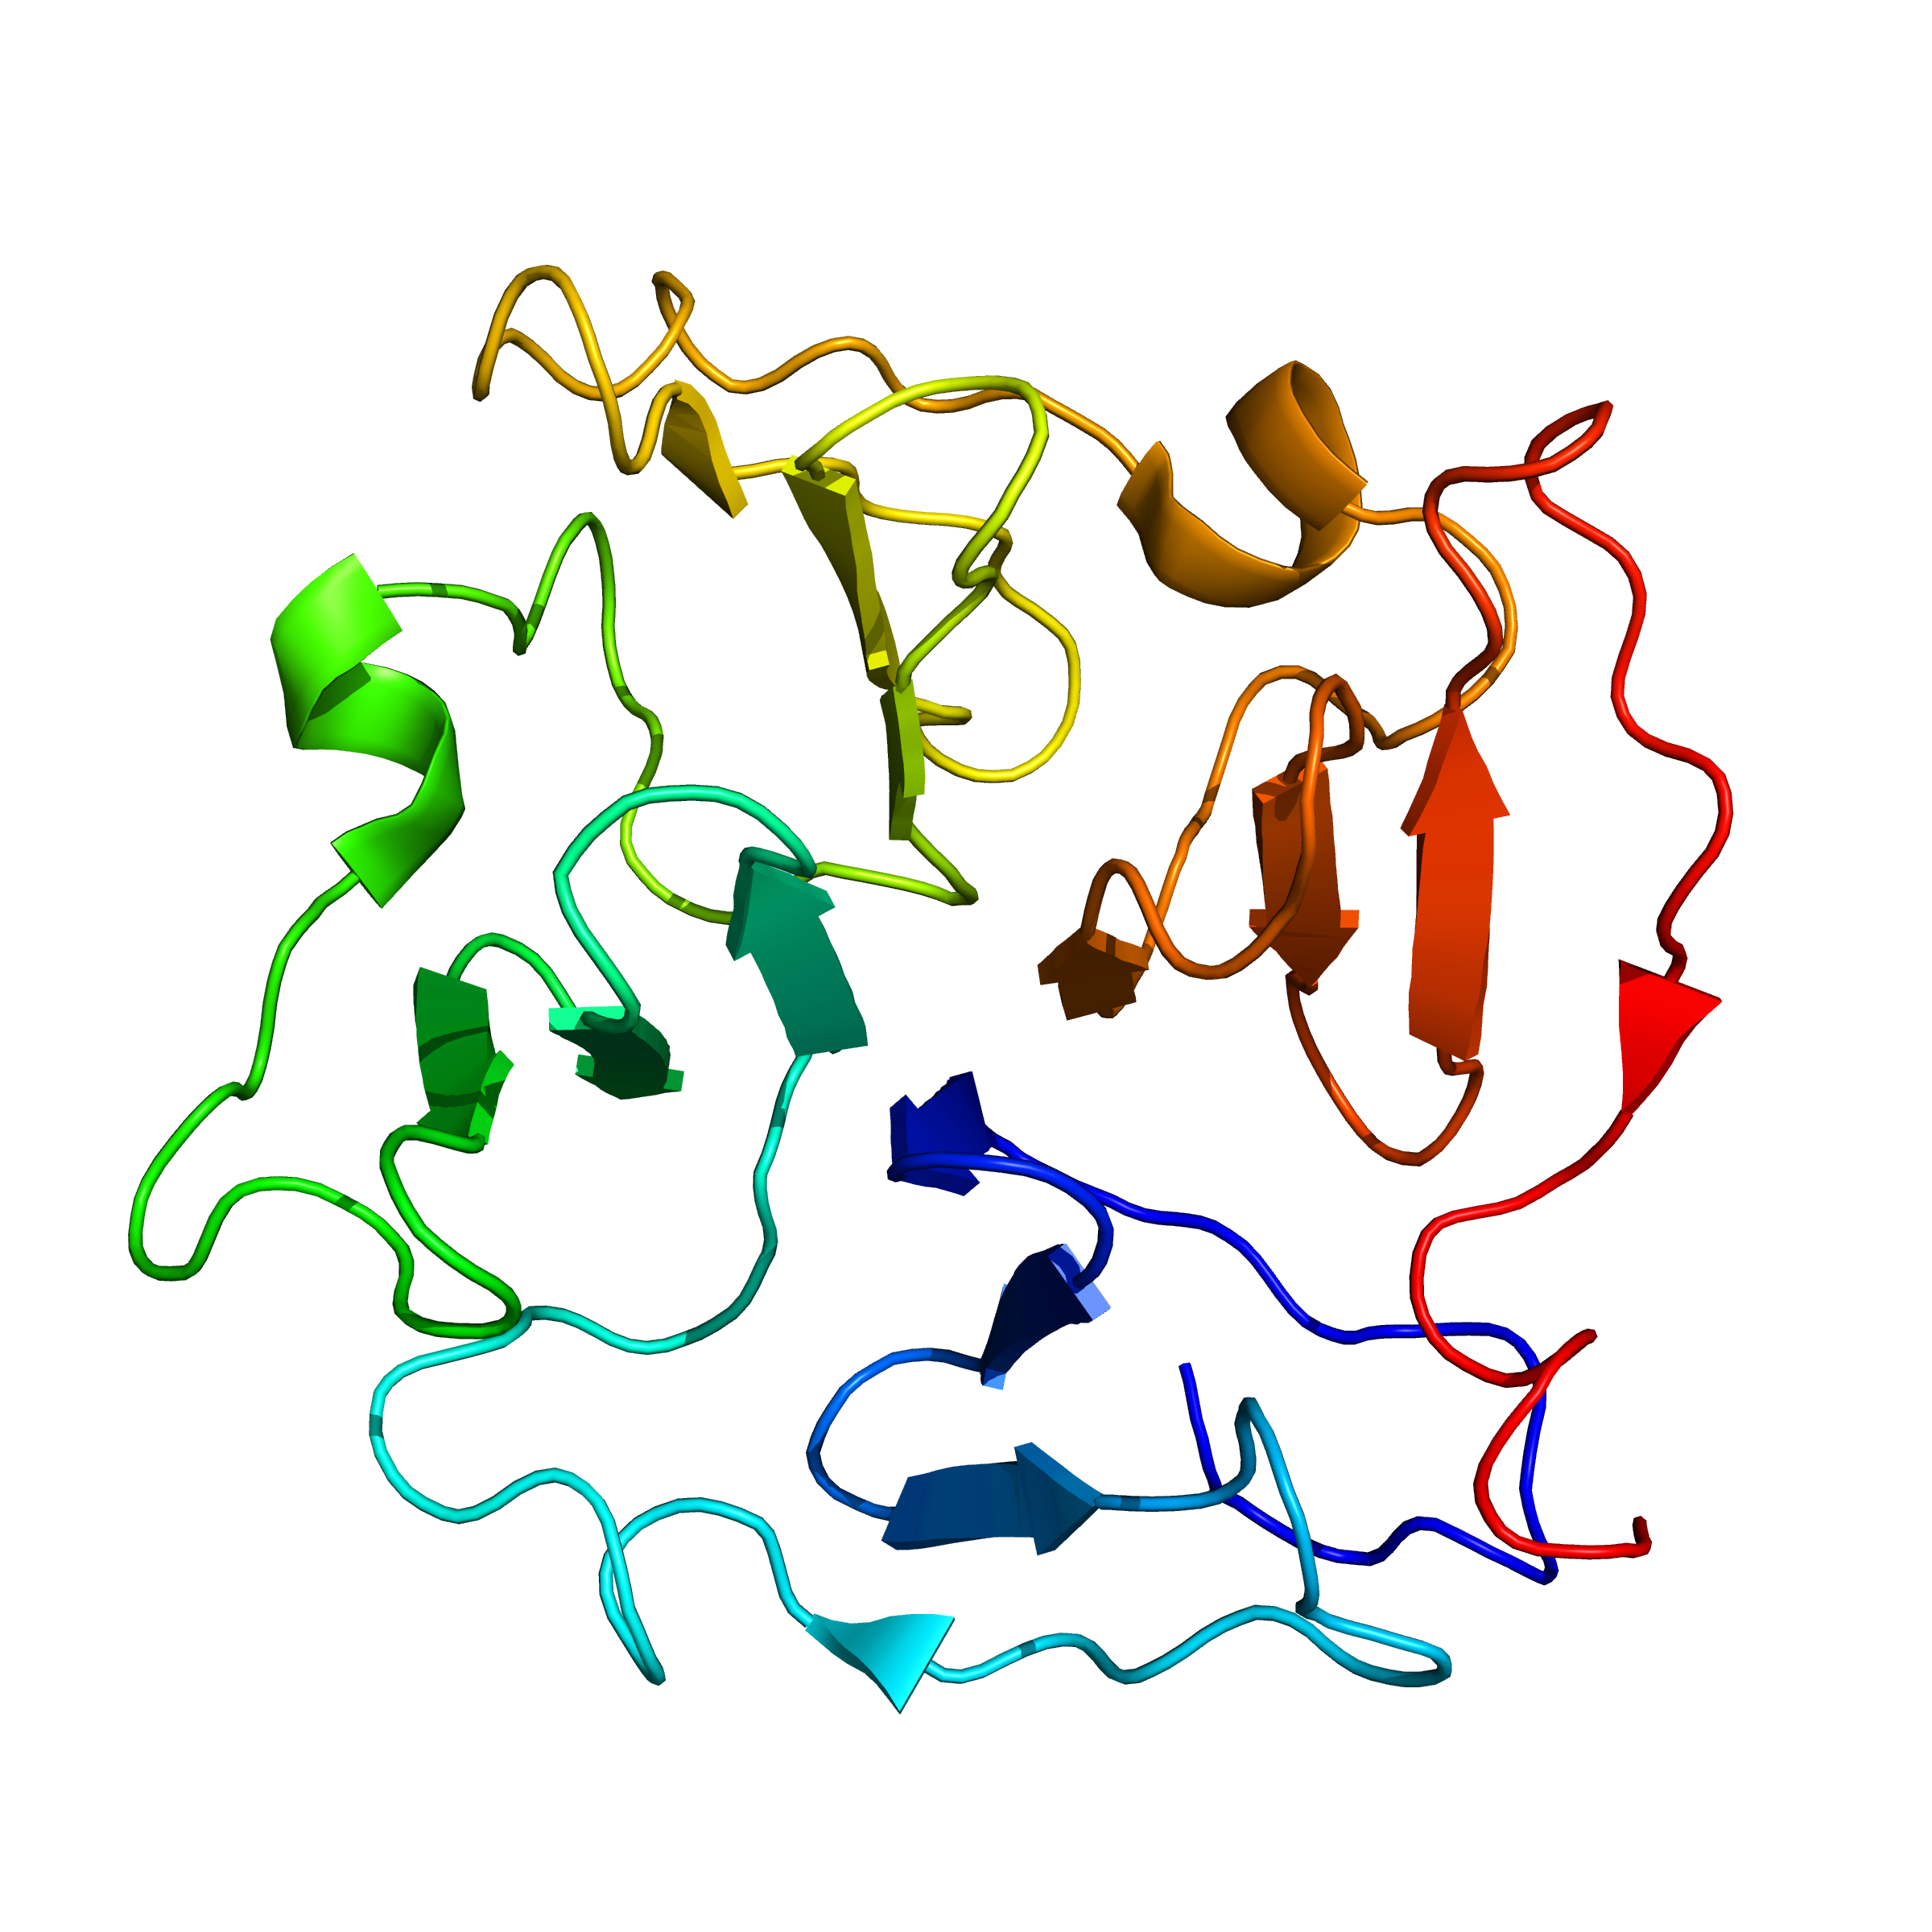 mmp12hpx | recombinant proteins offer